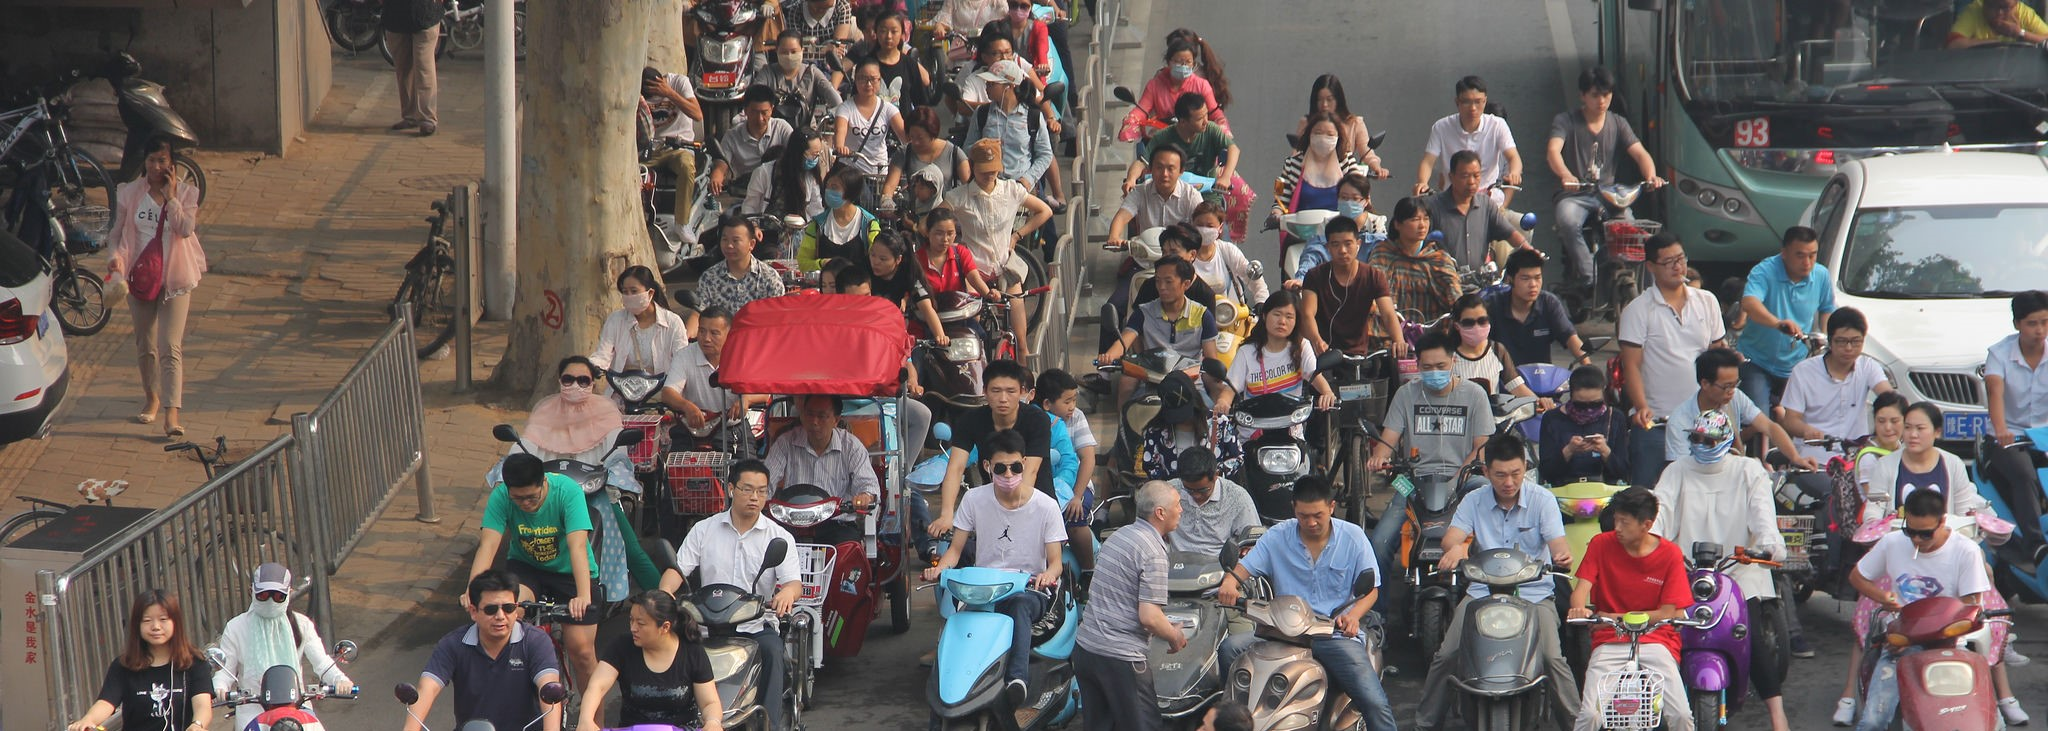 Commuters in Zhengzhou (Photo: Flickr/ V.T. Polywoda)